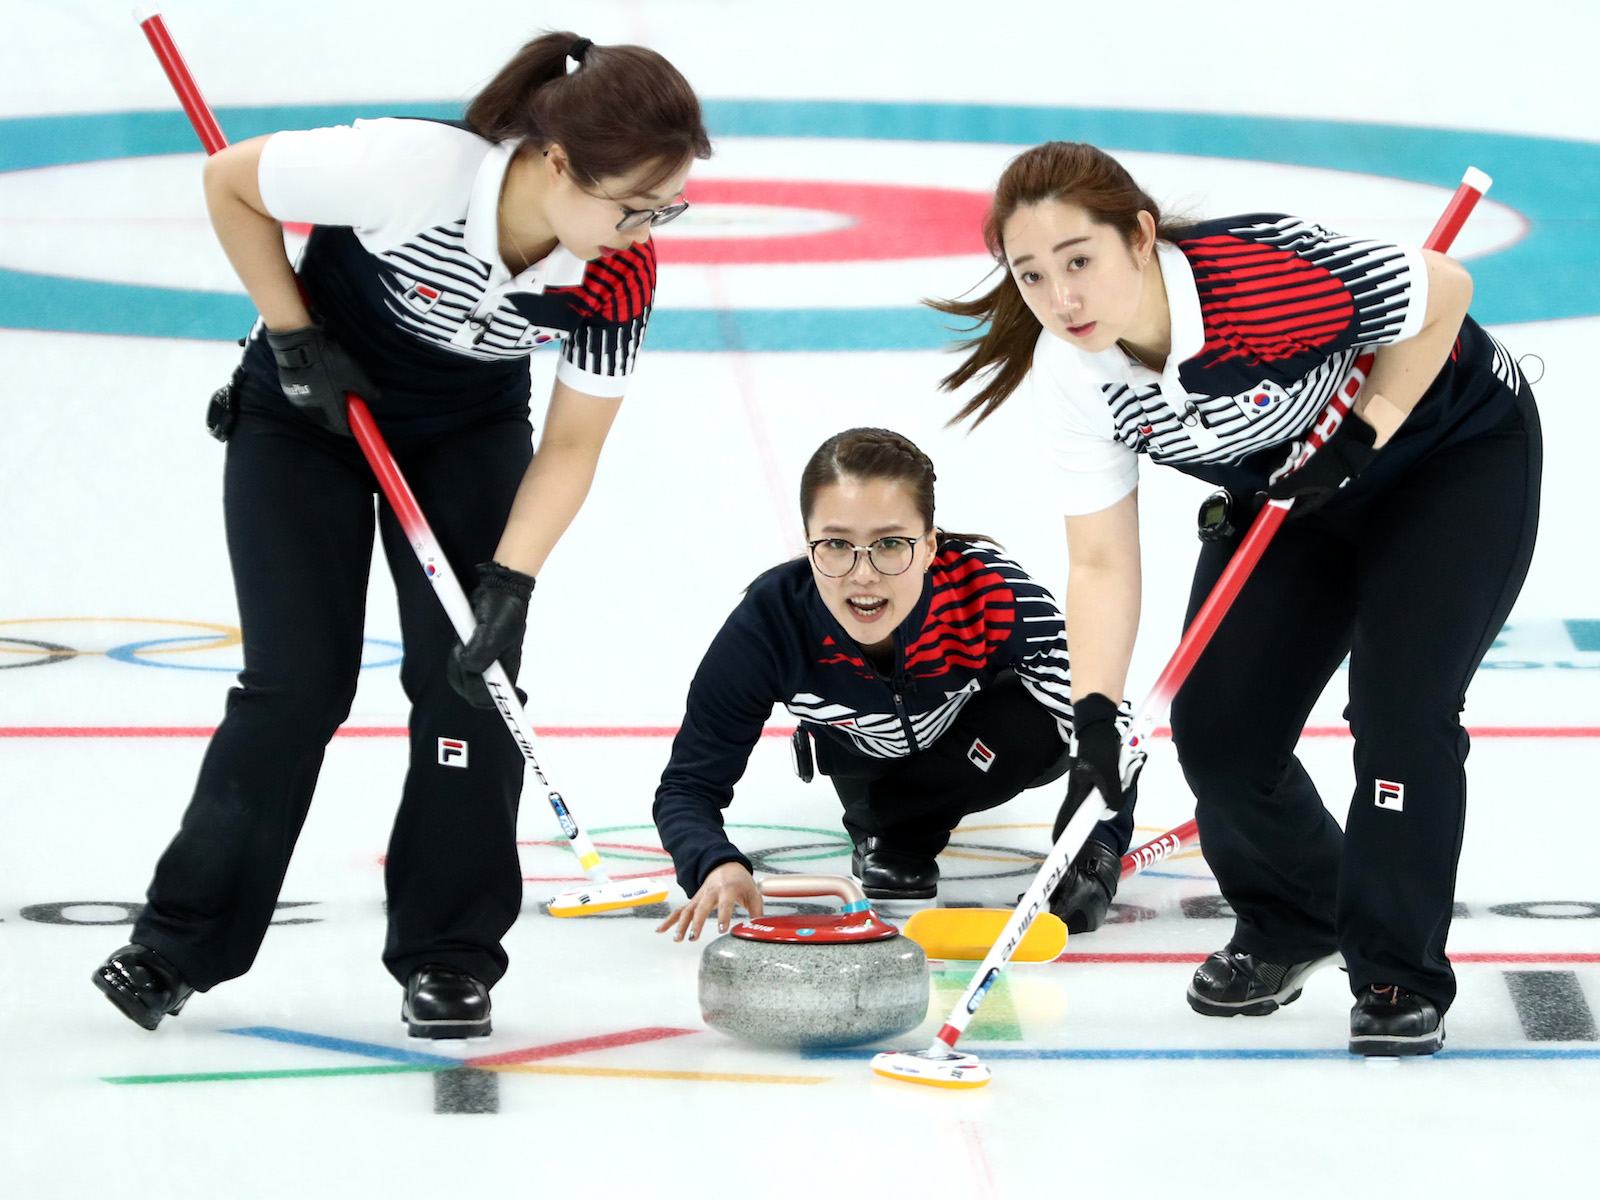 Winter Olympics 2018: Sweden top Korea's 'Garlic Girls' for curling gold